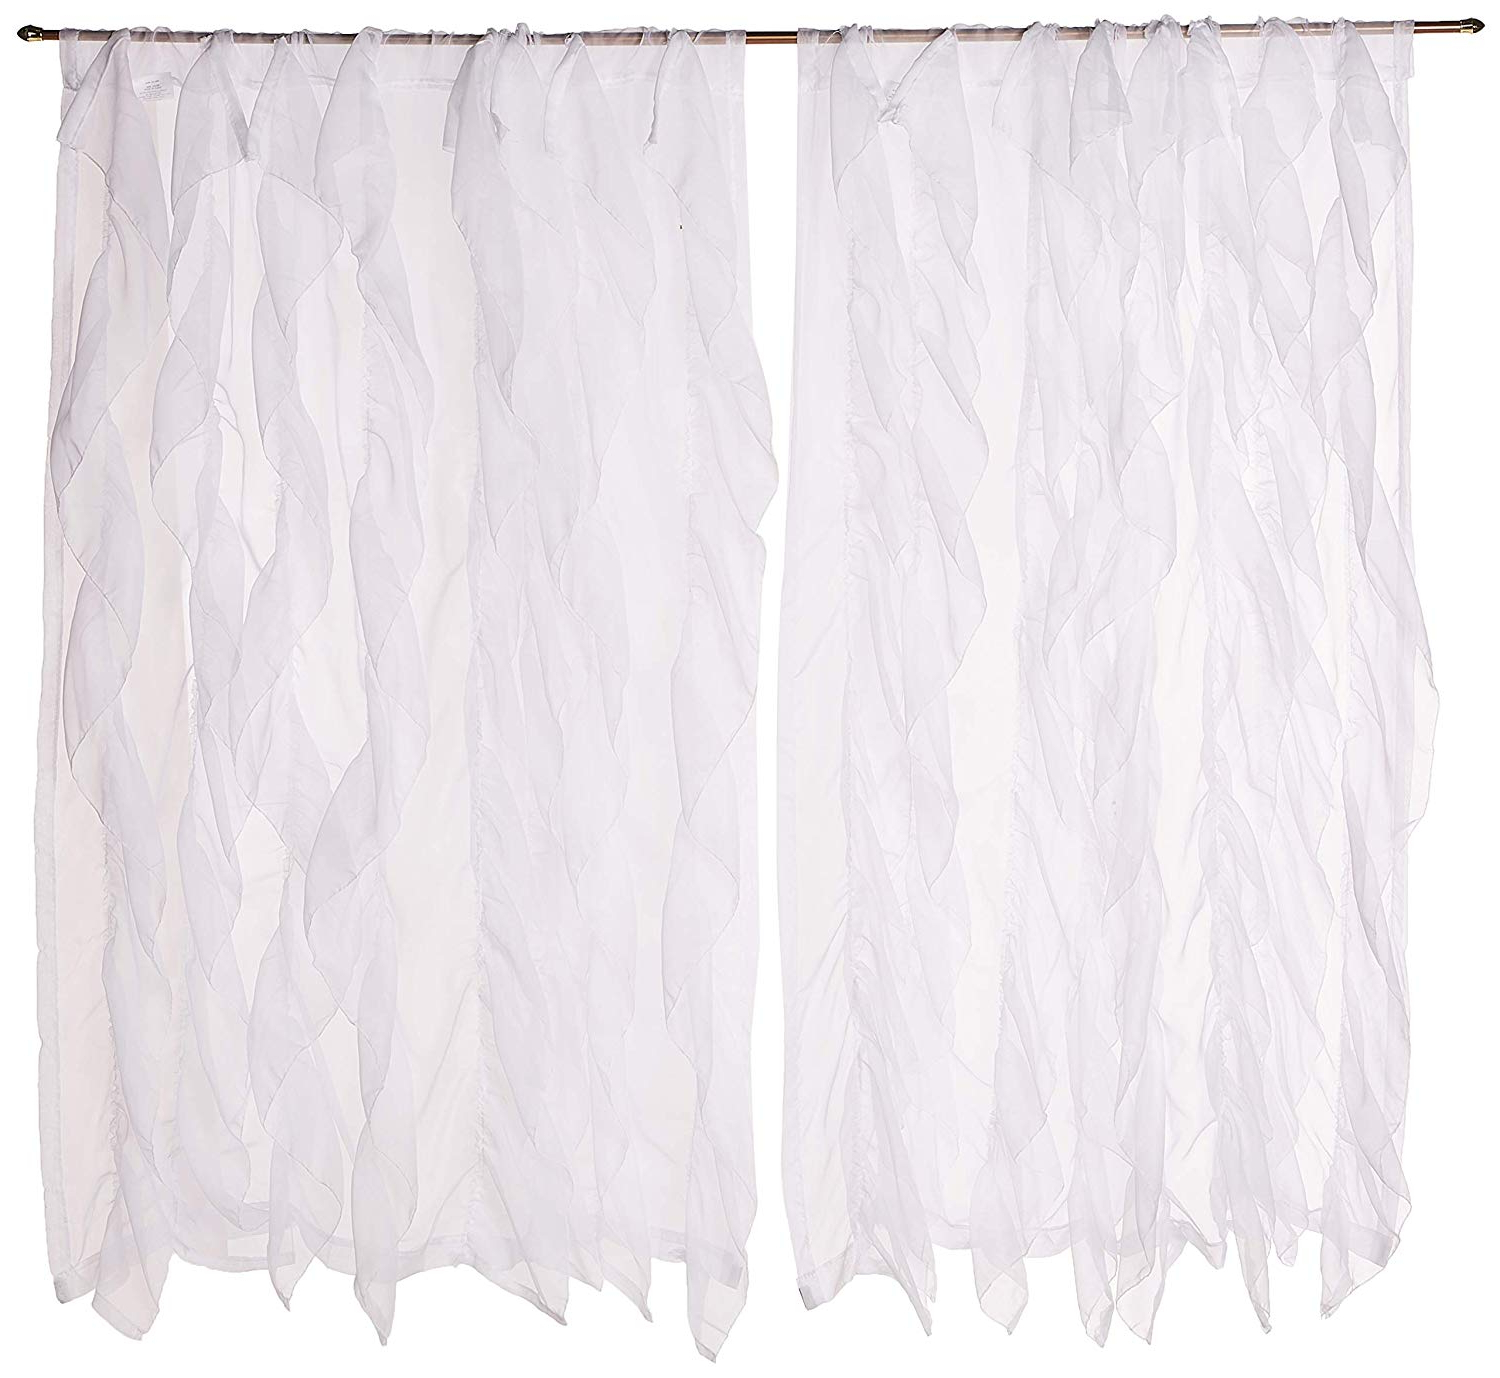 "Most Recent Sheer Voile Waterfall Ruffled Tier Single Curtain Panels With Regard To Sweet Home Collection Sheer Voile Vertical Ruffled Window Curtain Panel 50""  X 63"", 63"" X 50"", White, 2 Piece (View 7 of 20)"